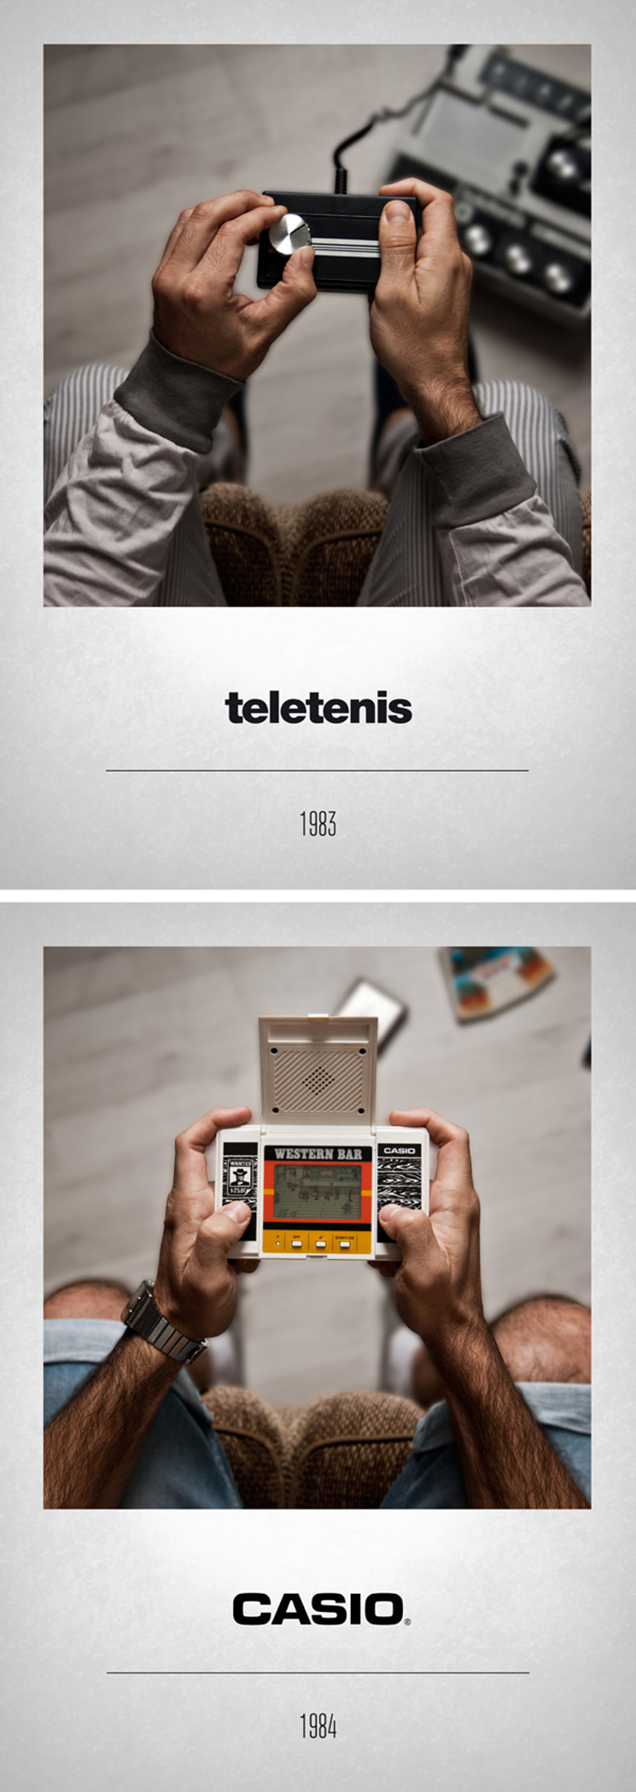 game-consoles-1983-1984.jpg